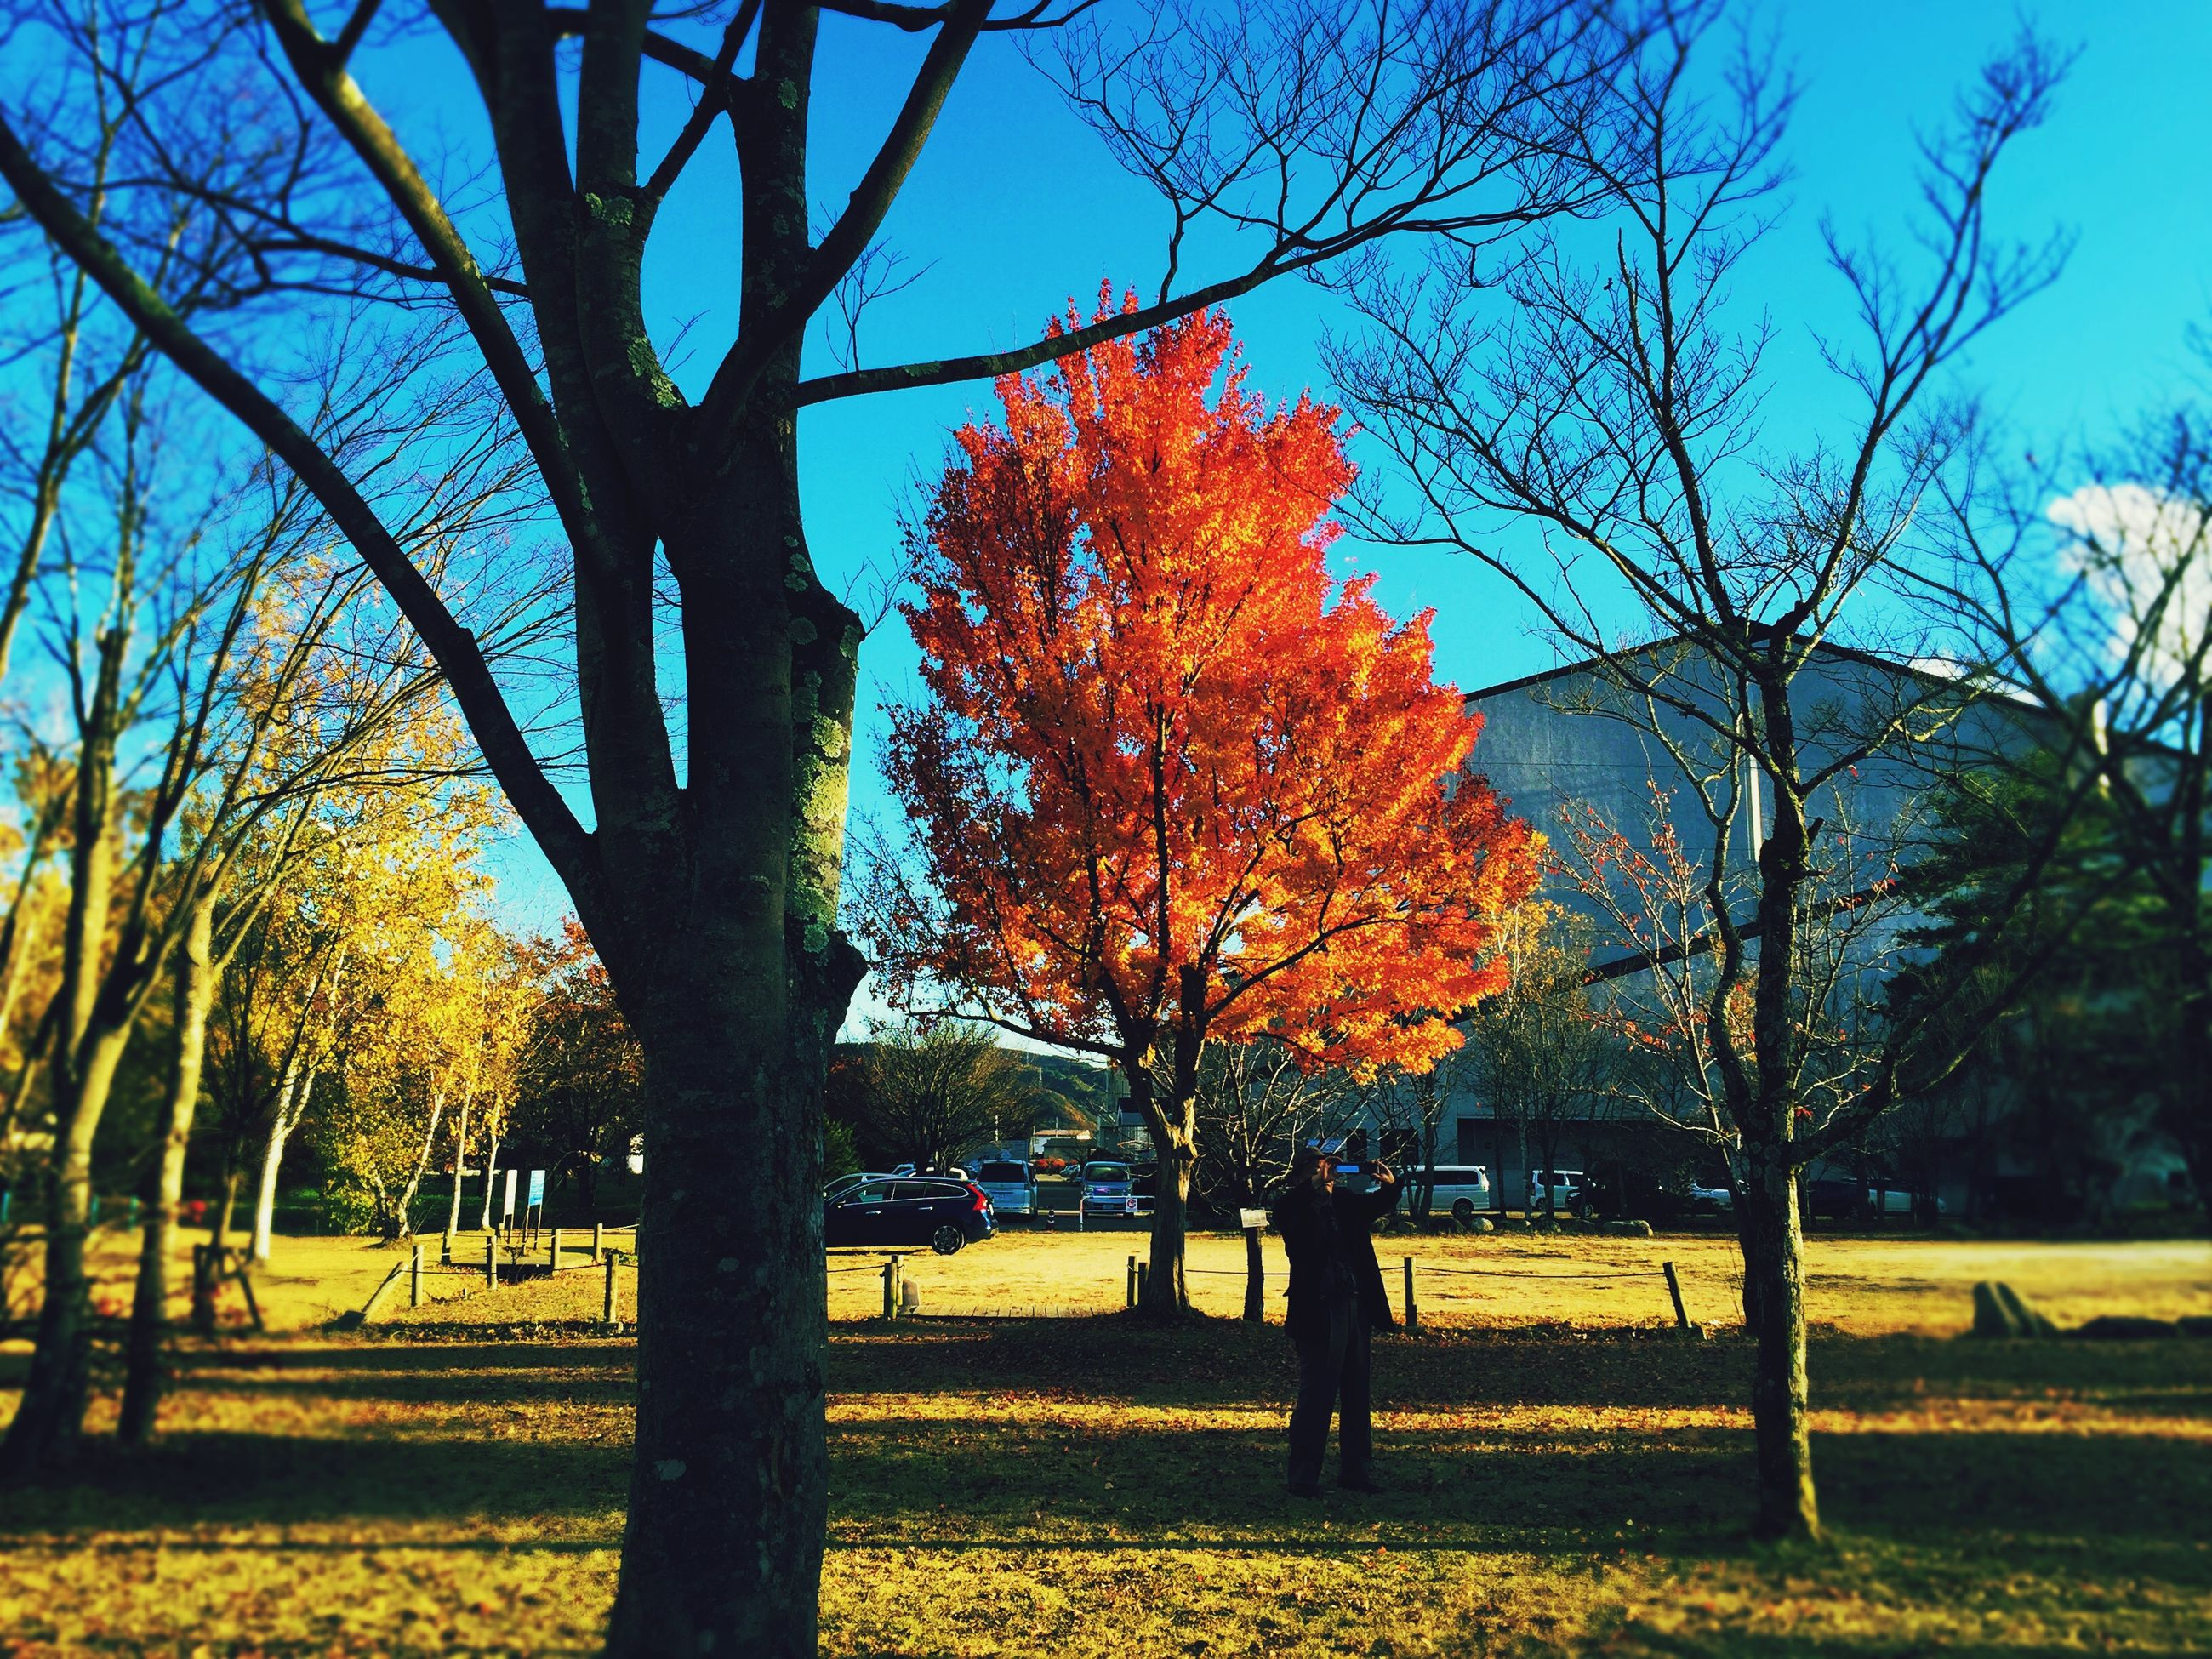 tree, autumn, branch, bare tree, change, park - man made space, orange color, sky, tranquility, nature, tree trunk, season, beauty in nature, sunlight, yellow, shadow, fence, growth, scenics, field